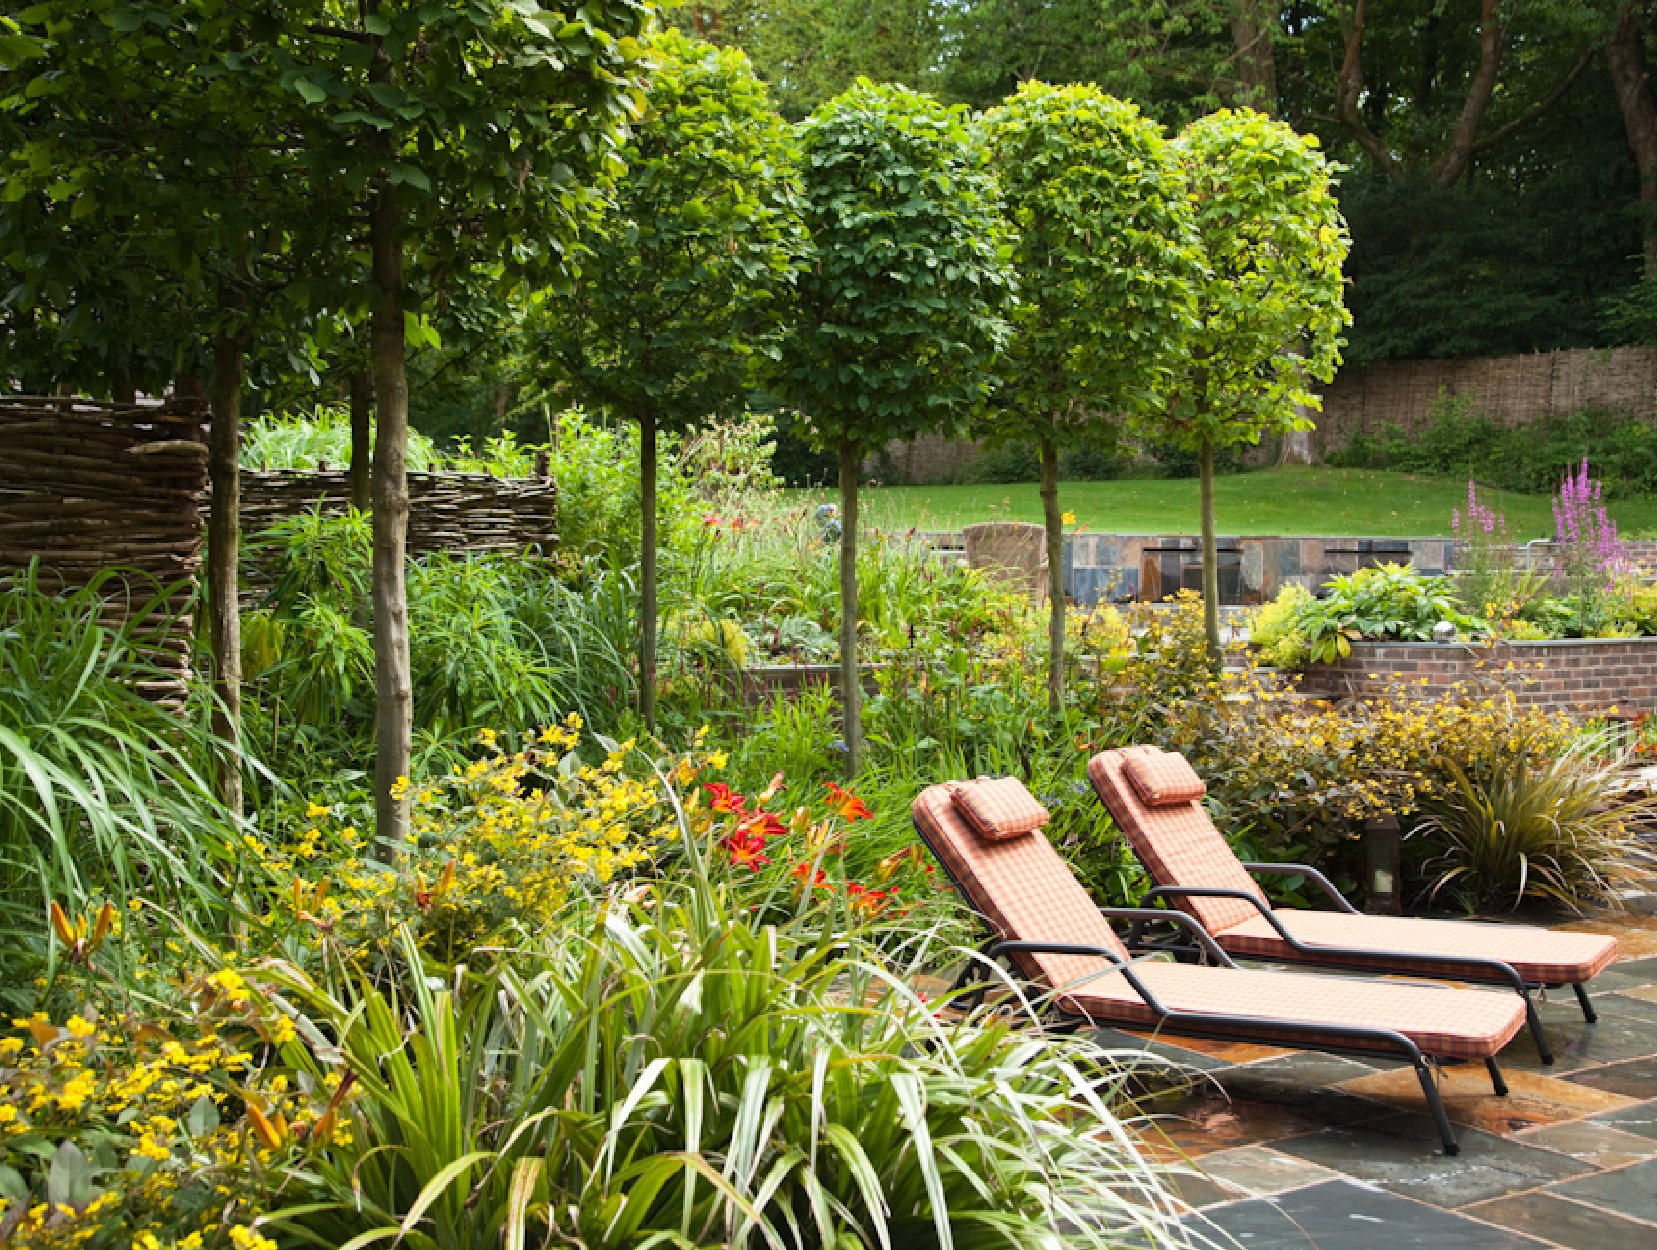 Lollipop trees with bold contemporary planting and sun loungers on a rustic slate terrace